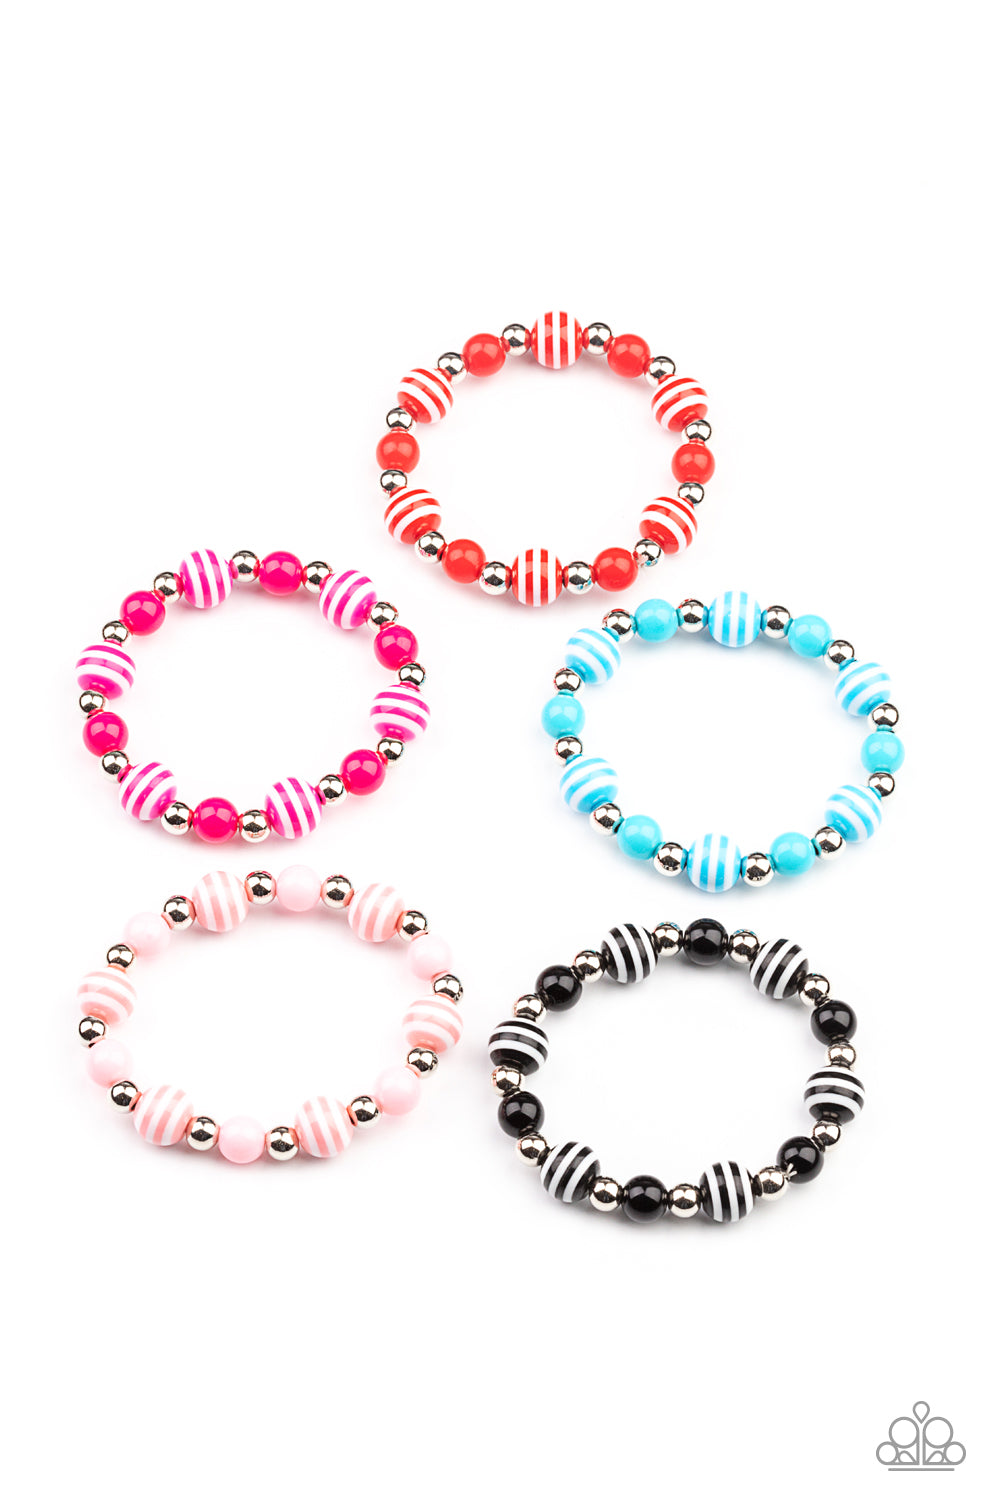 Paparazzi Colorful Striped And Solid Bead Bracelets (2294)